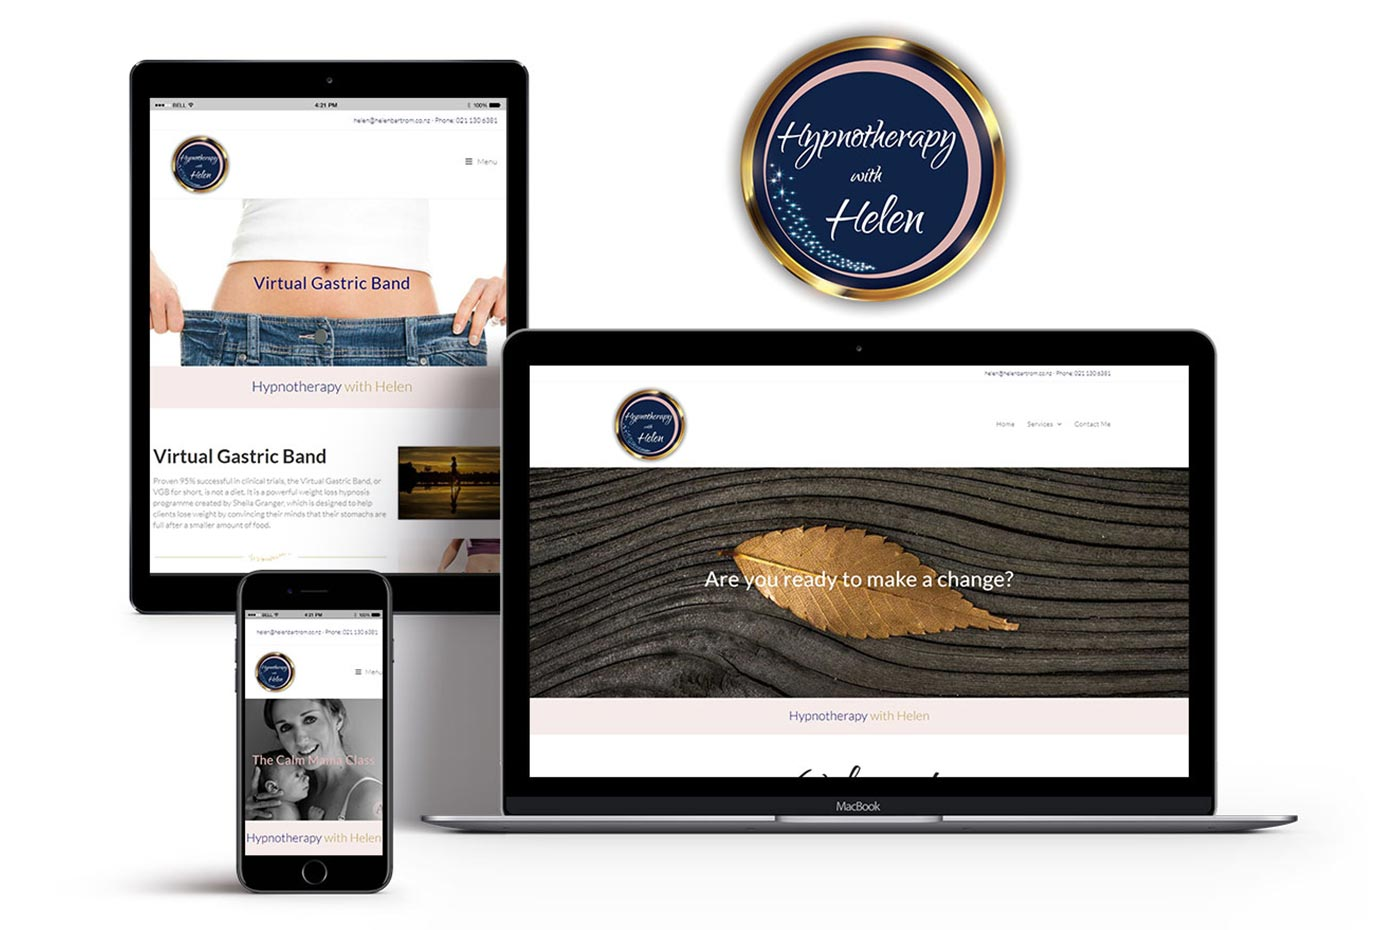 Hypnotherapy with Helen website and branding